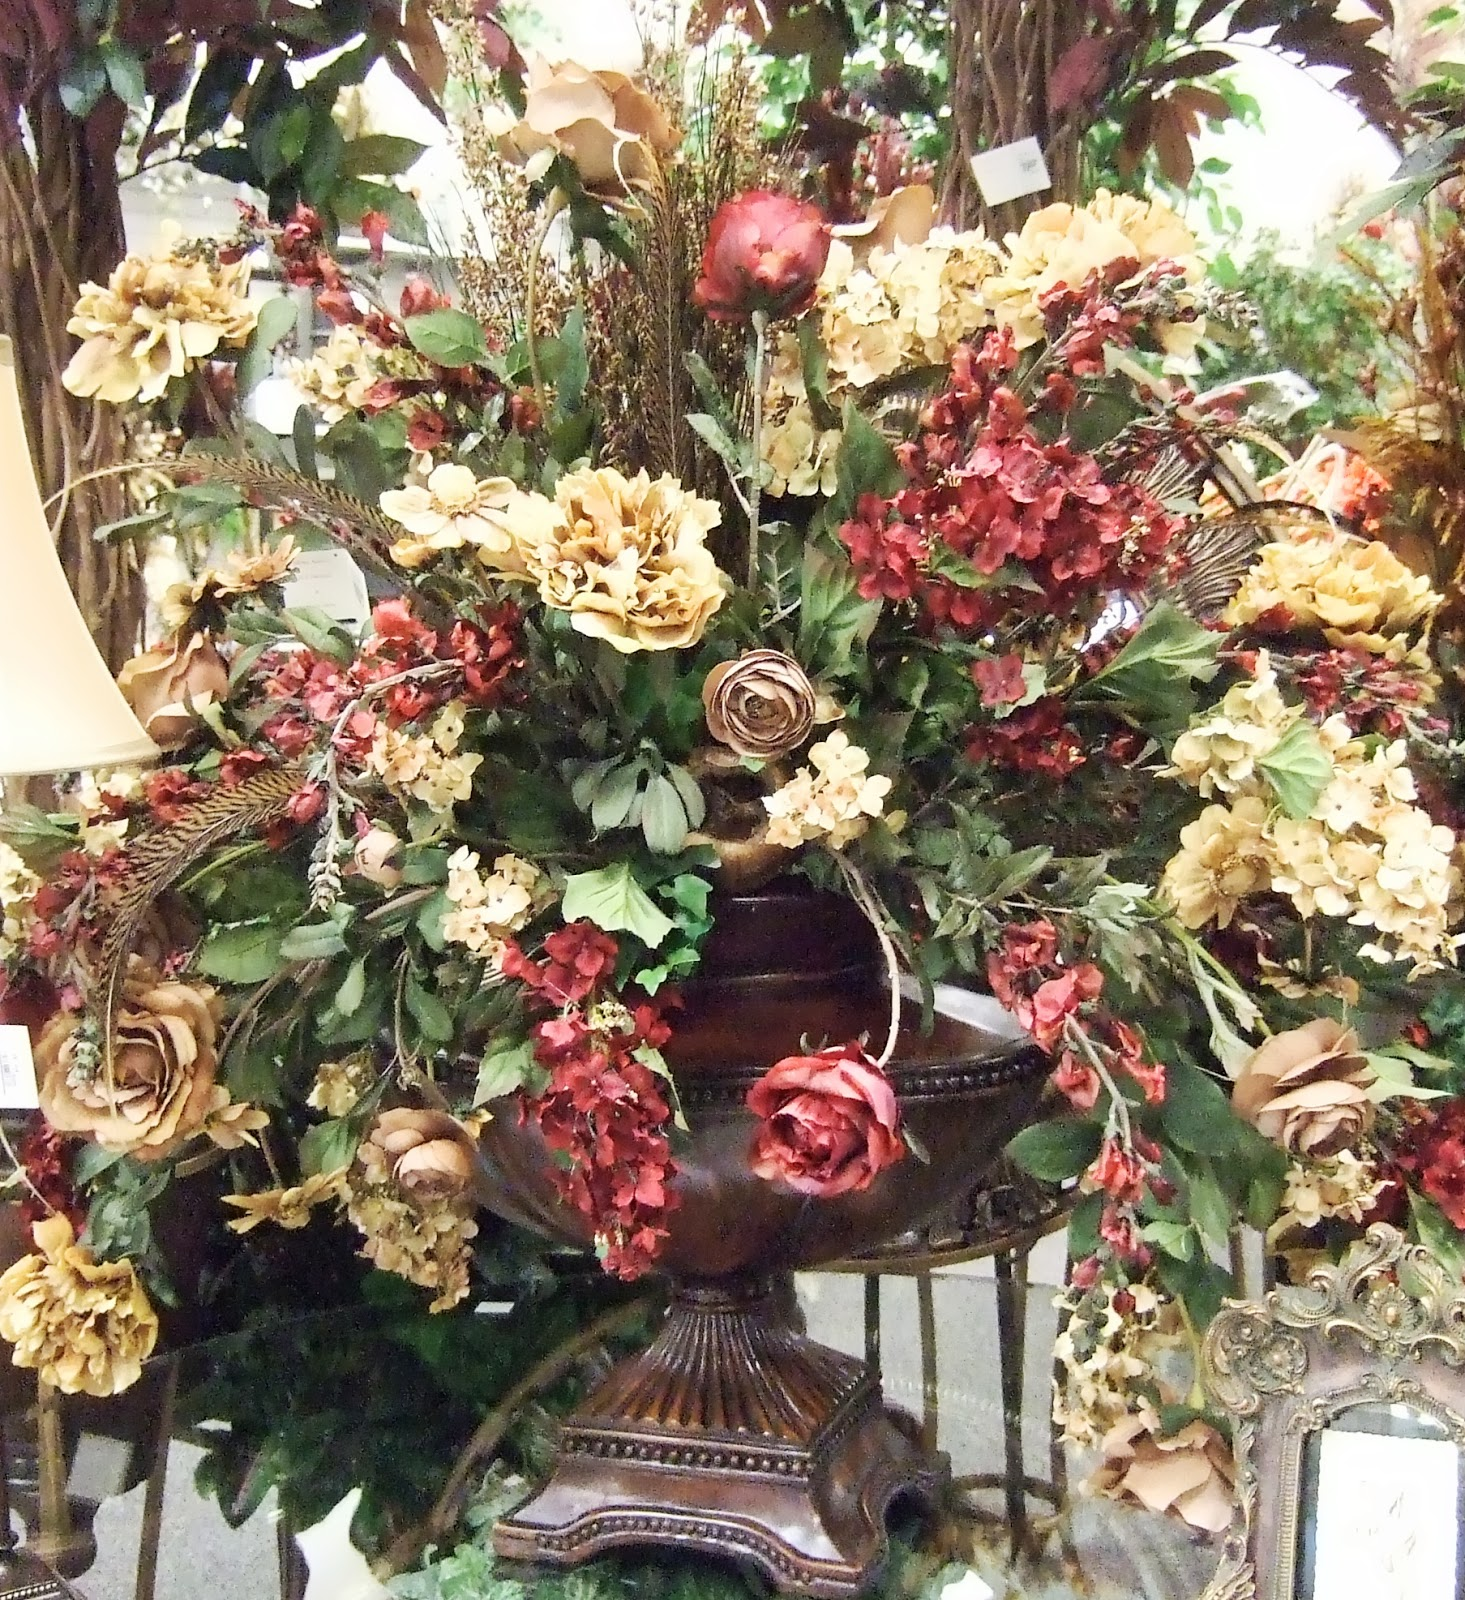 Ana silk flowers ideas elegant traditional for Ideas for floral arrangements